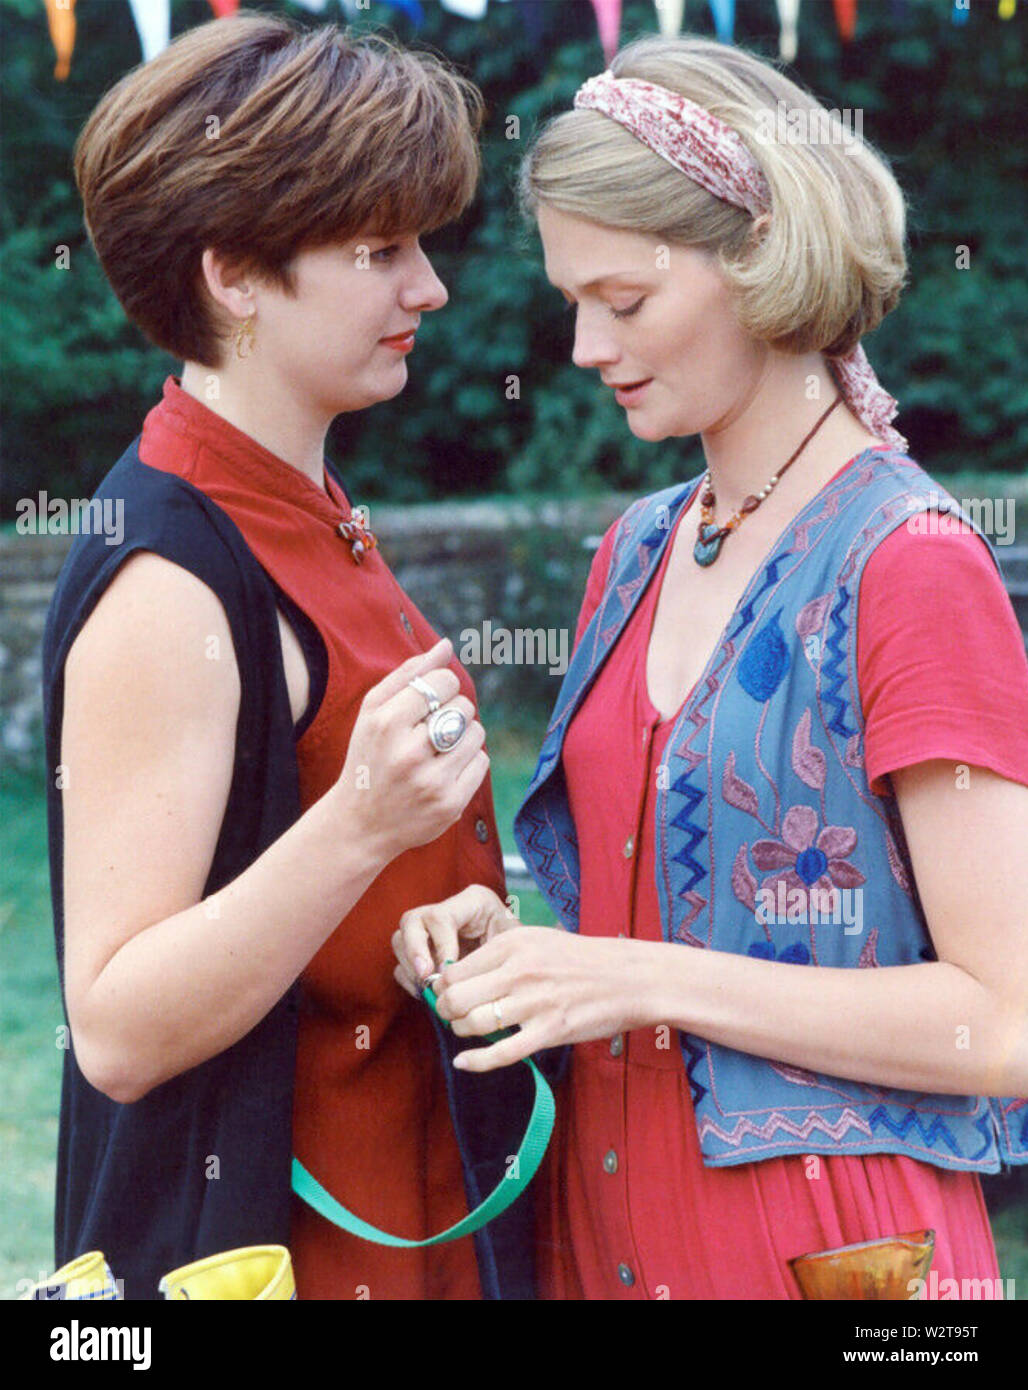 A VILLAGE AFFAIR 1995 Warner Sisters Production for ITV with Sophie Ward at right and Kerry Fox - Stock Image